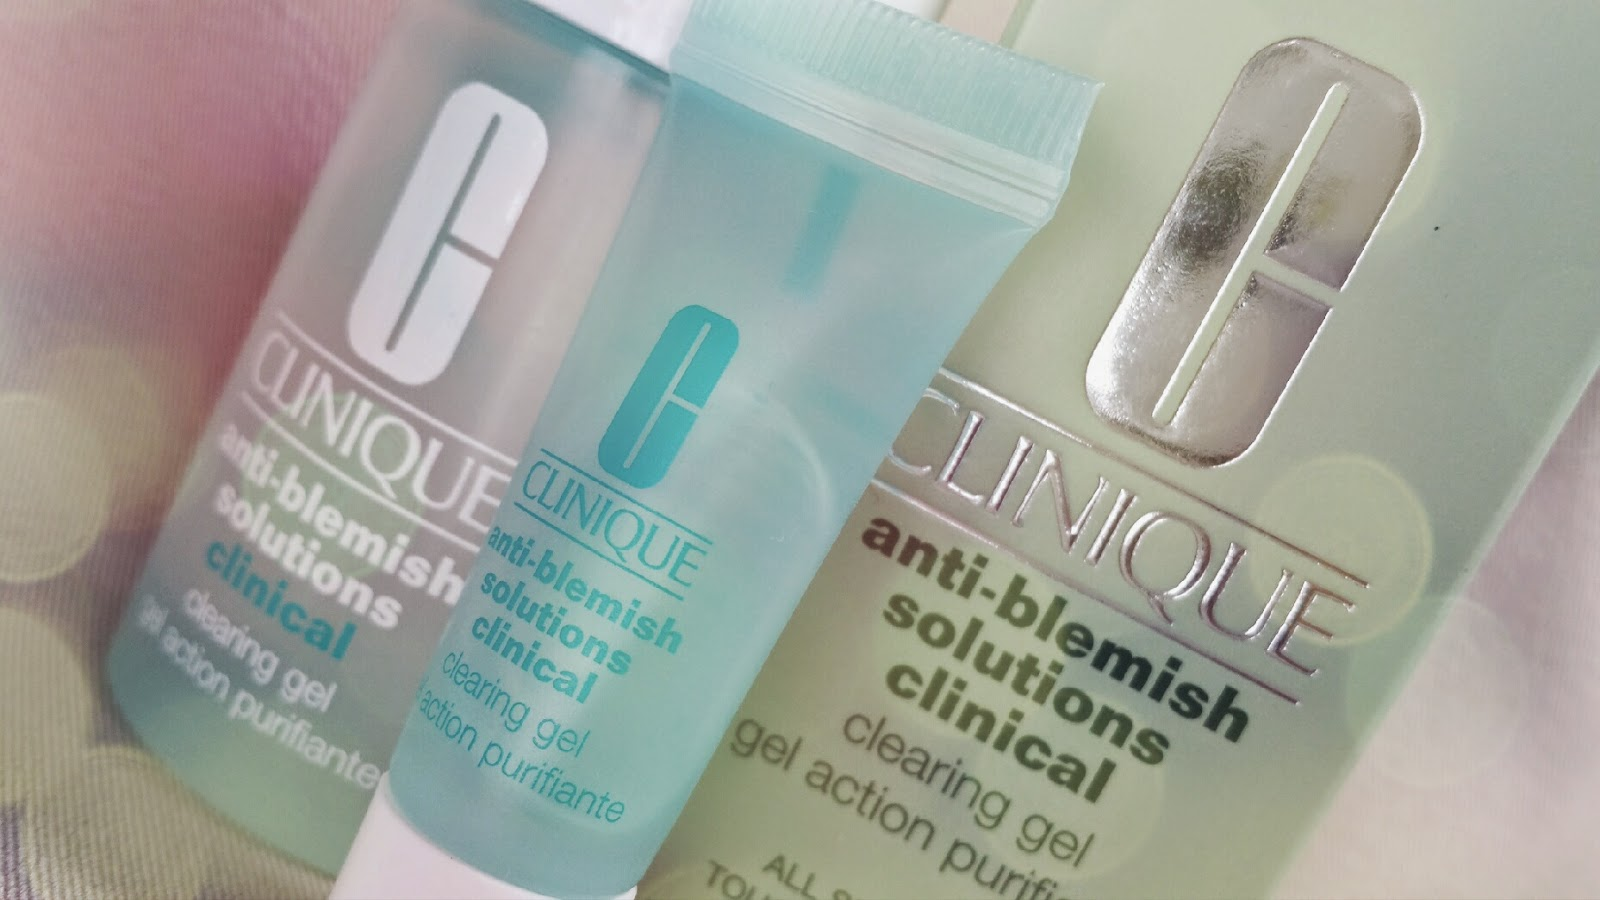 Clinique Anti-Blemish Clinical Clearing Gel